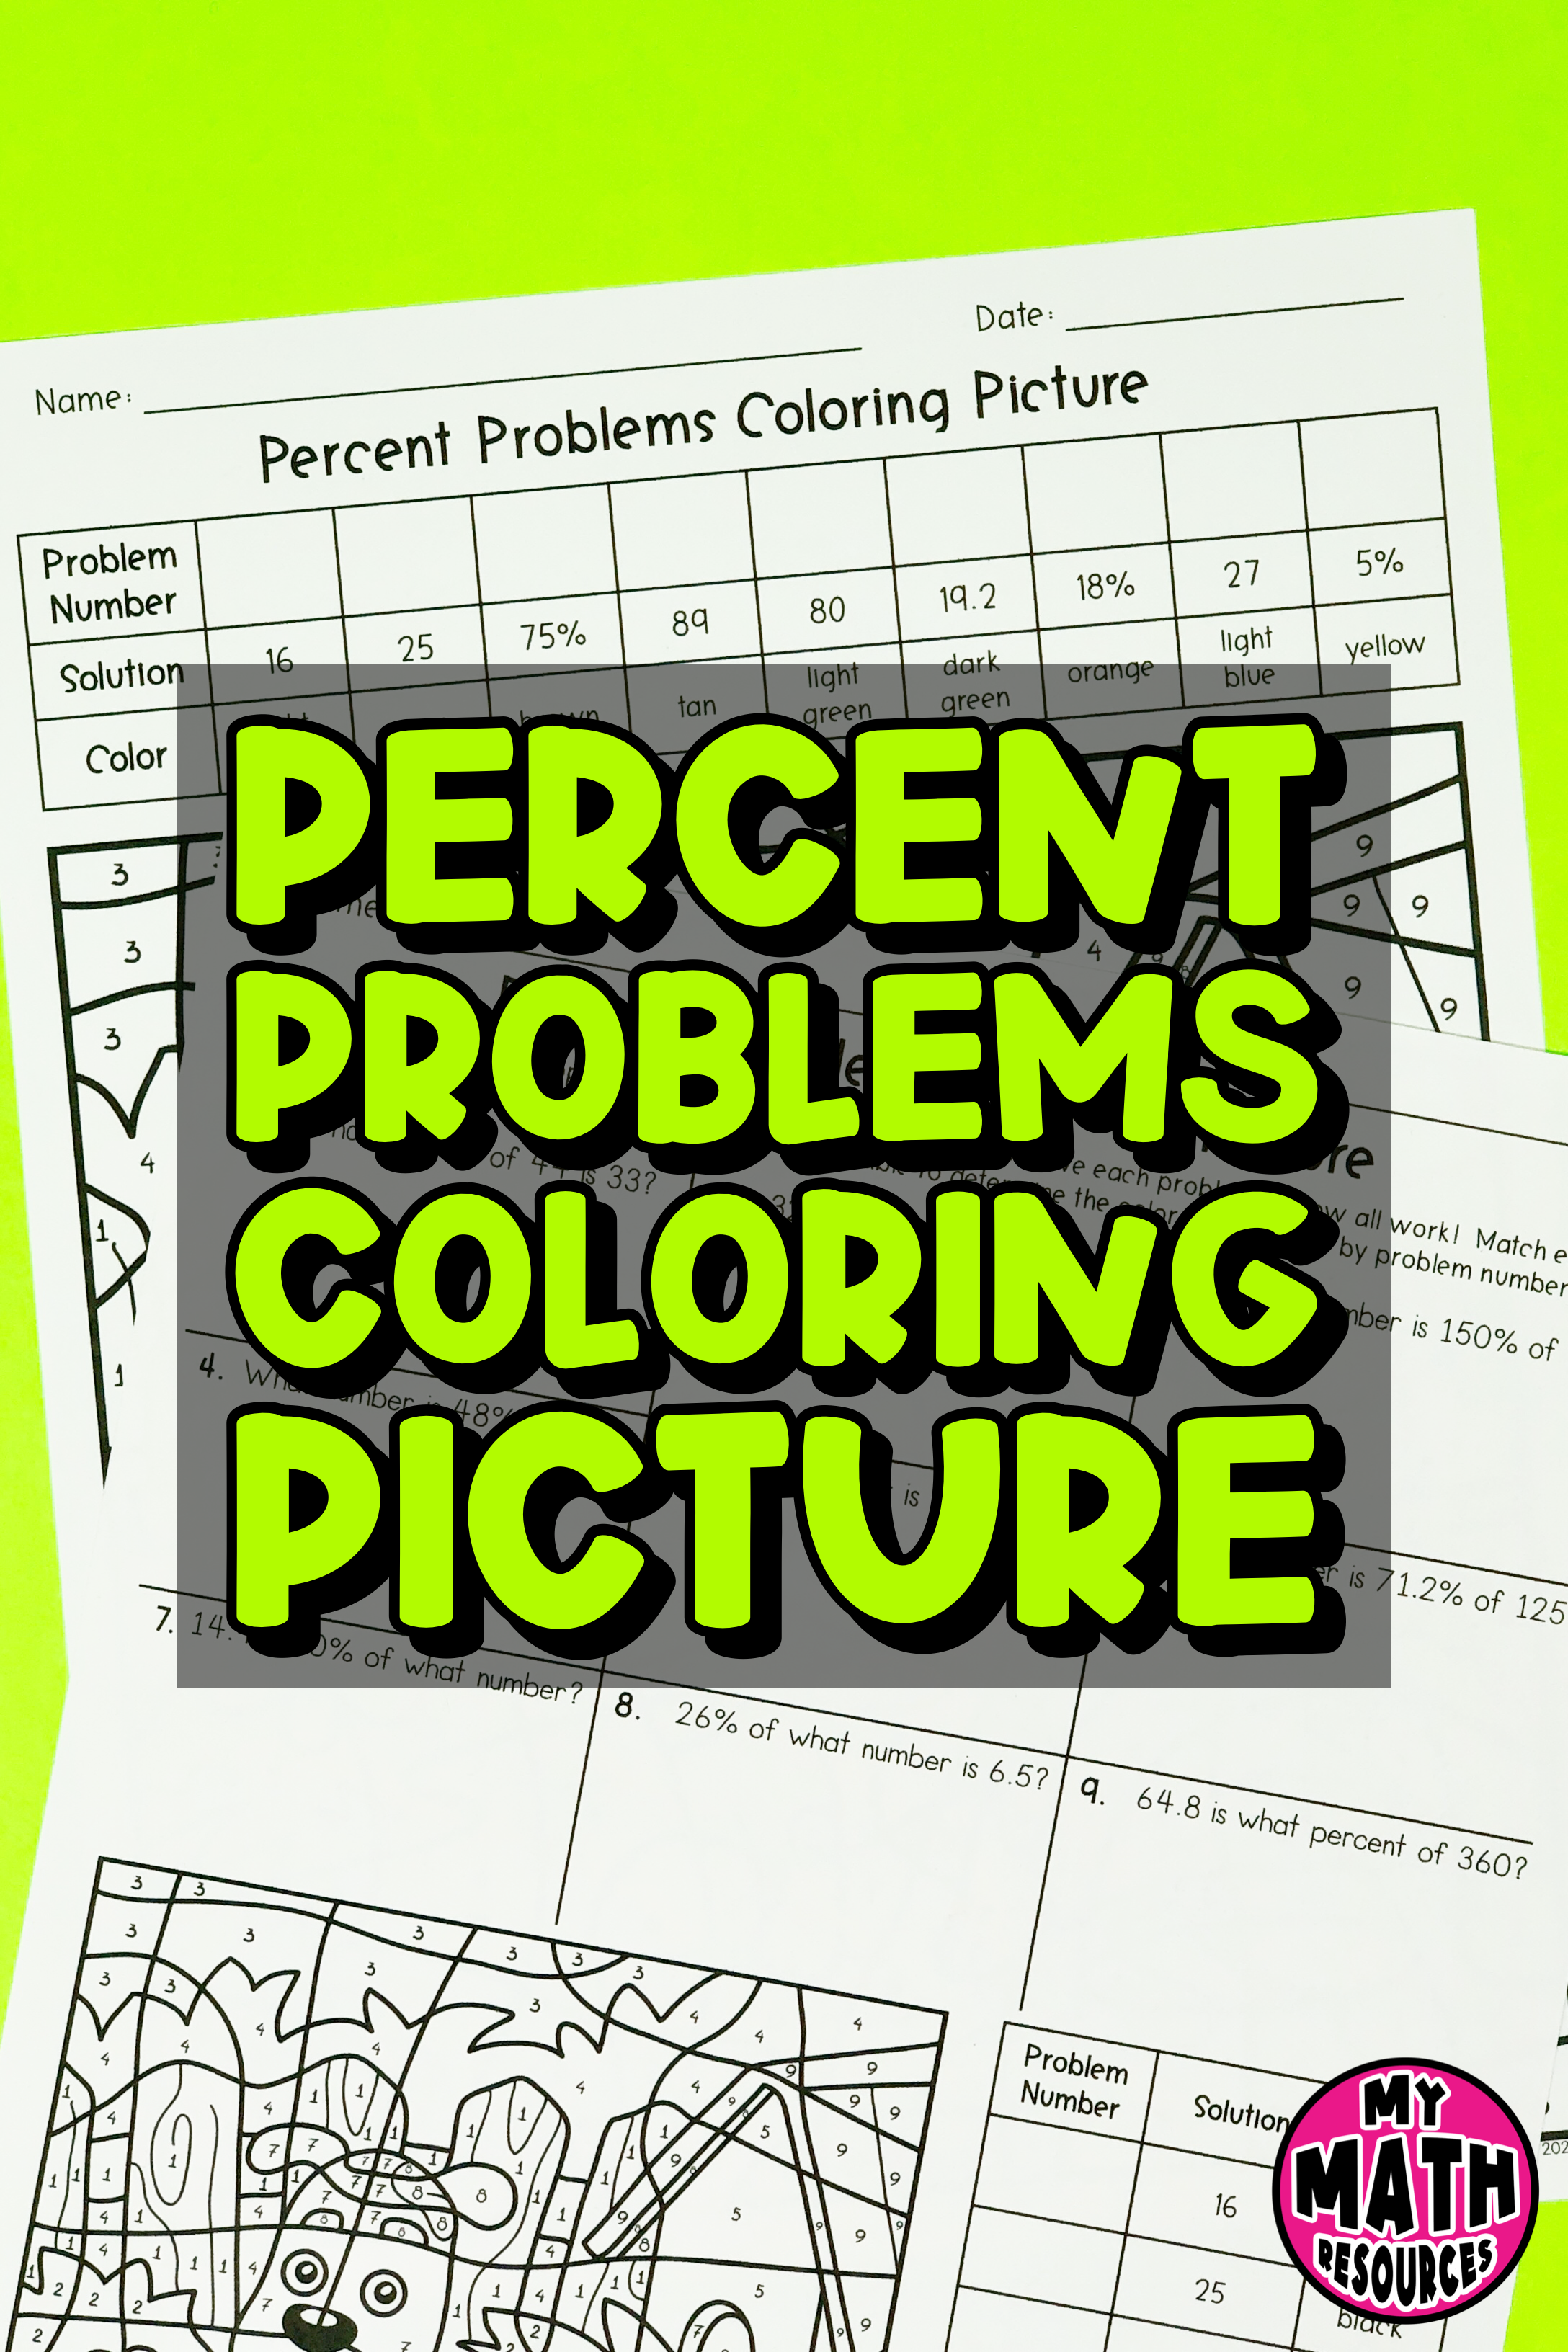 small resolution of My Math Resources - Percent Problems Coloring Picture Worksheet   7th grade  math worksheets